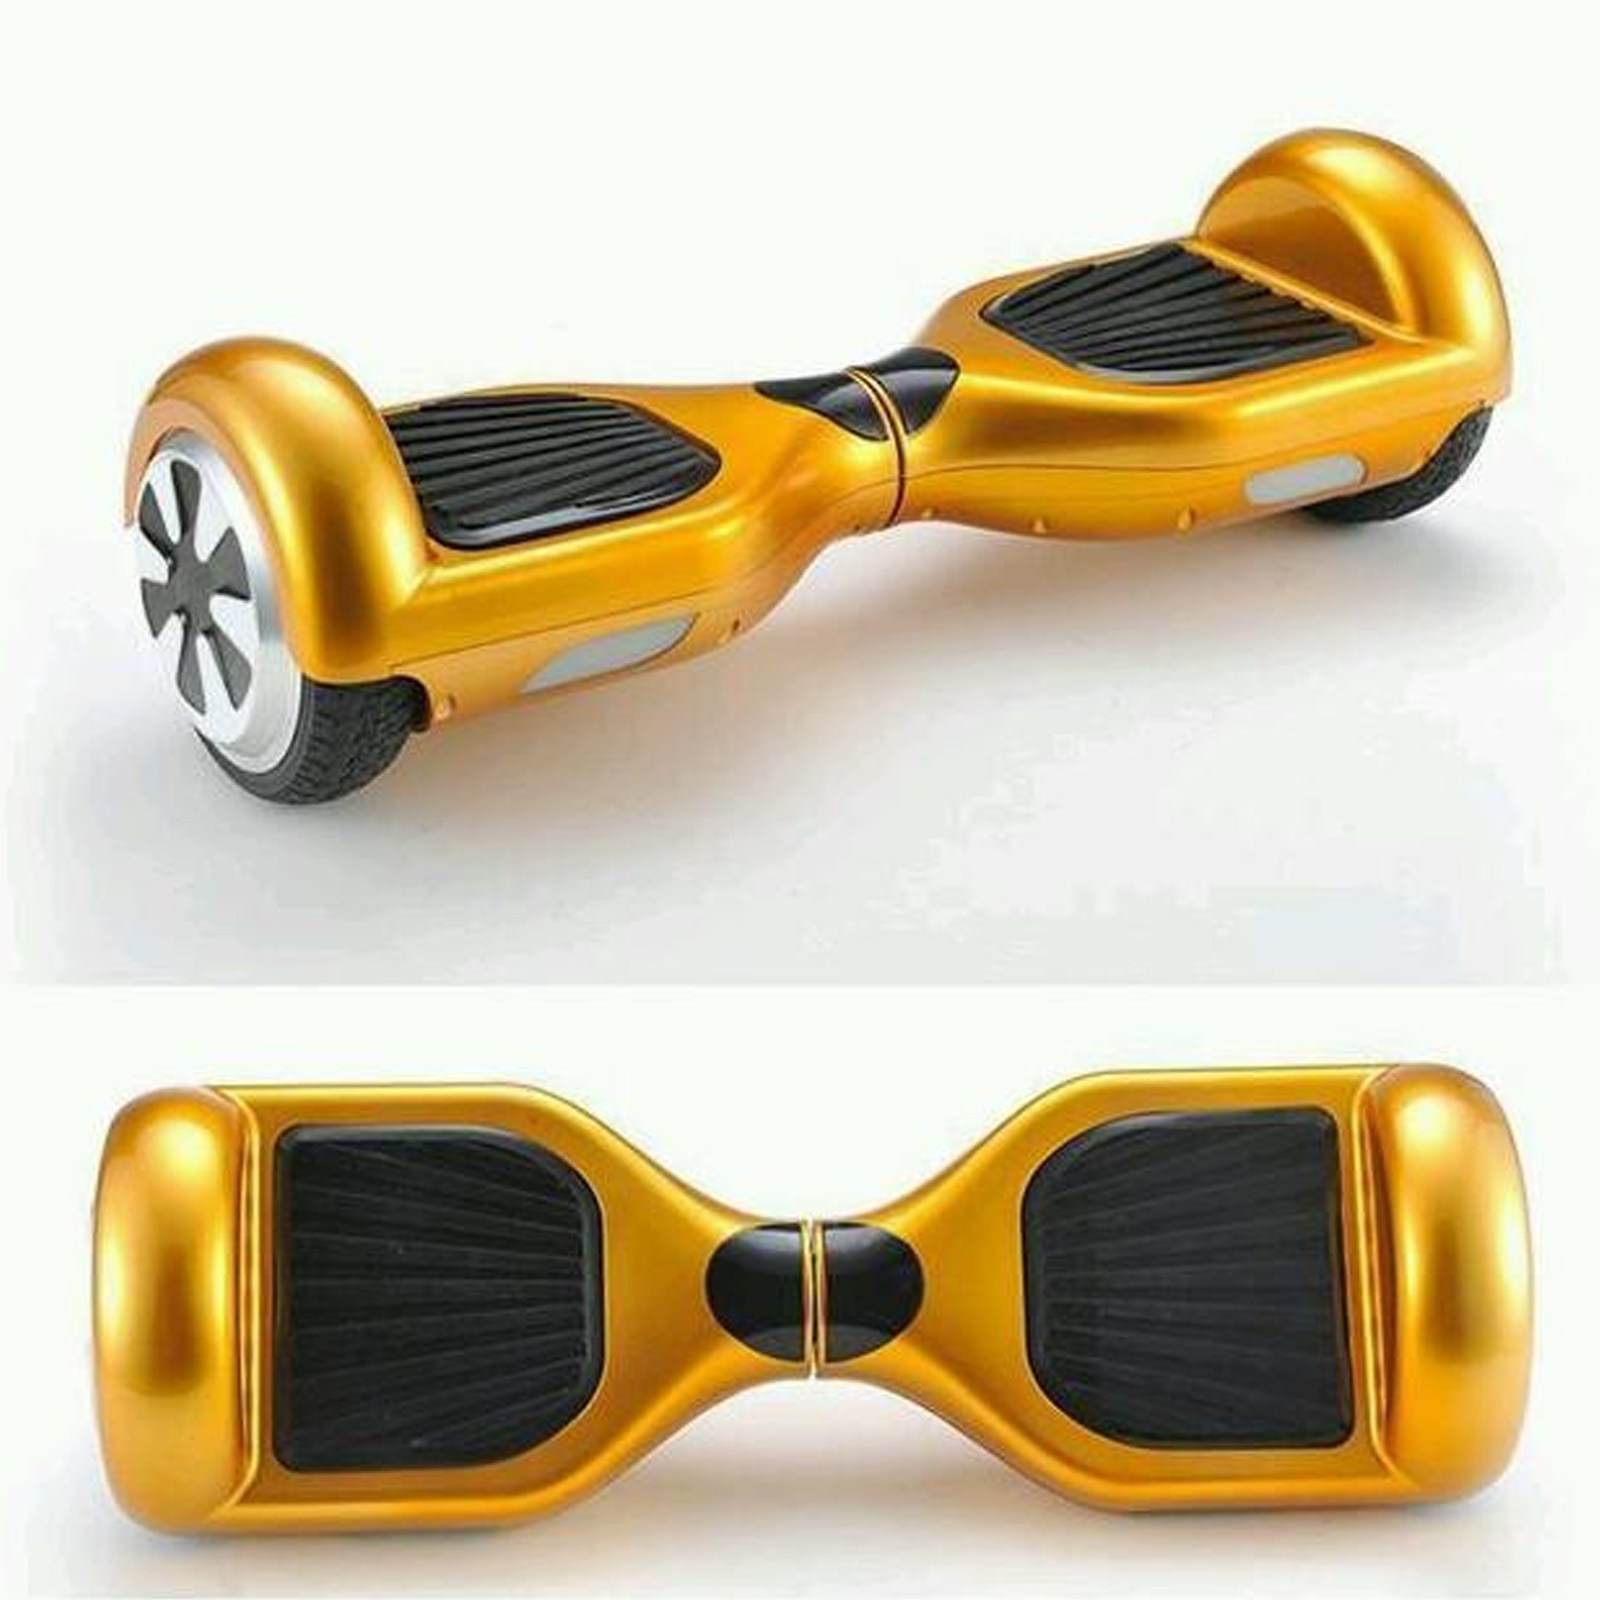 6.5 gold hoverboard3